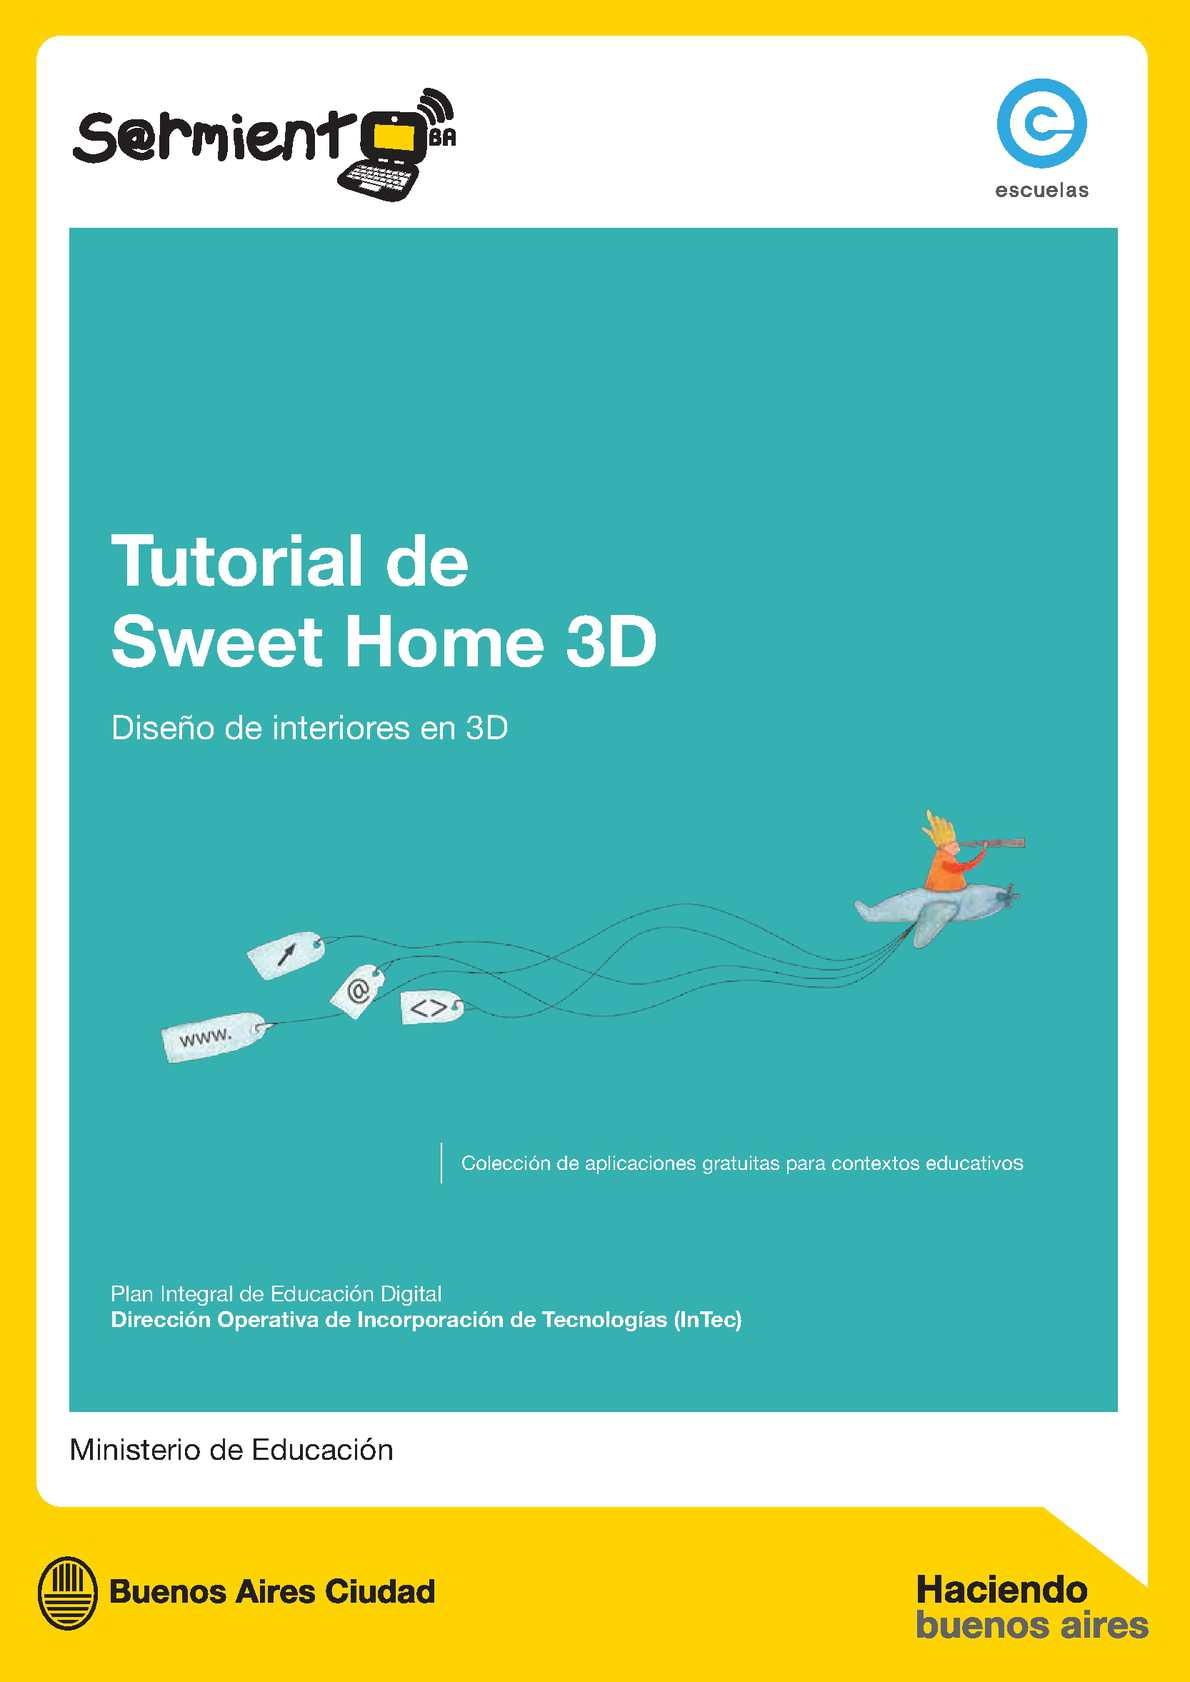 Calam o tutorial sweet home 3d for Ministerio de relaciones interiores